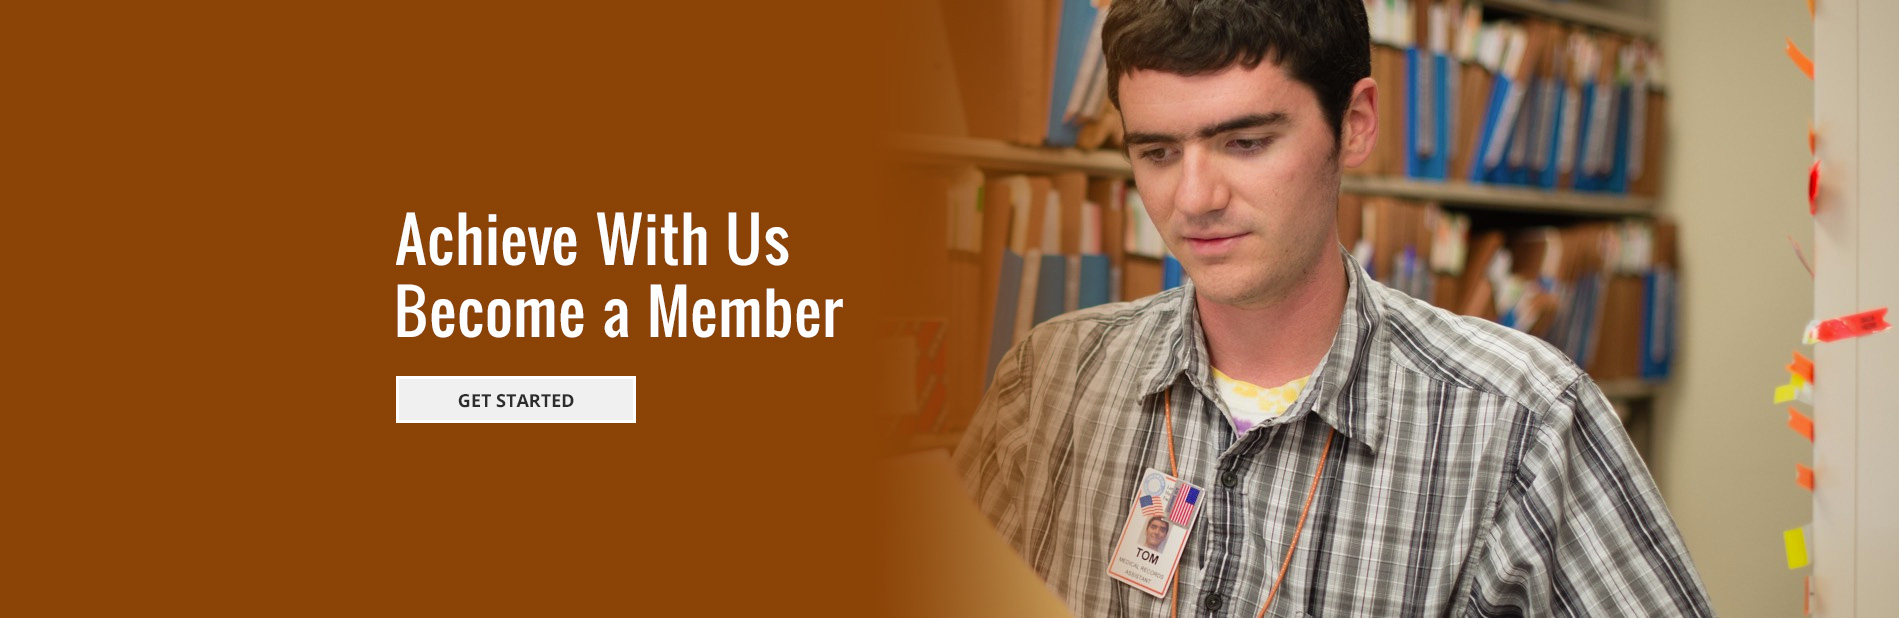 Become a Member of The Arc of Larimer County